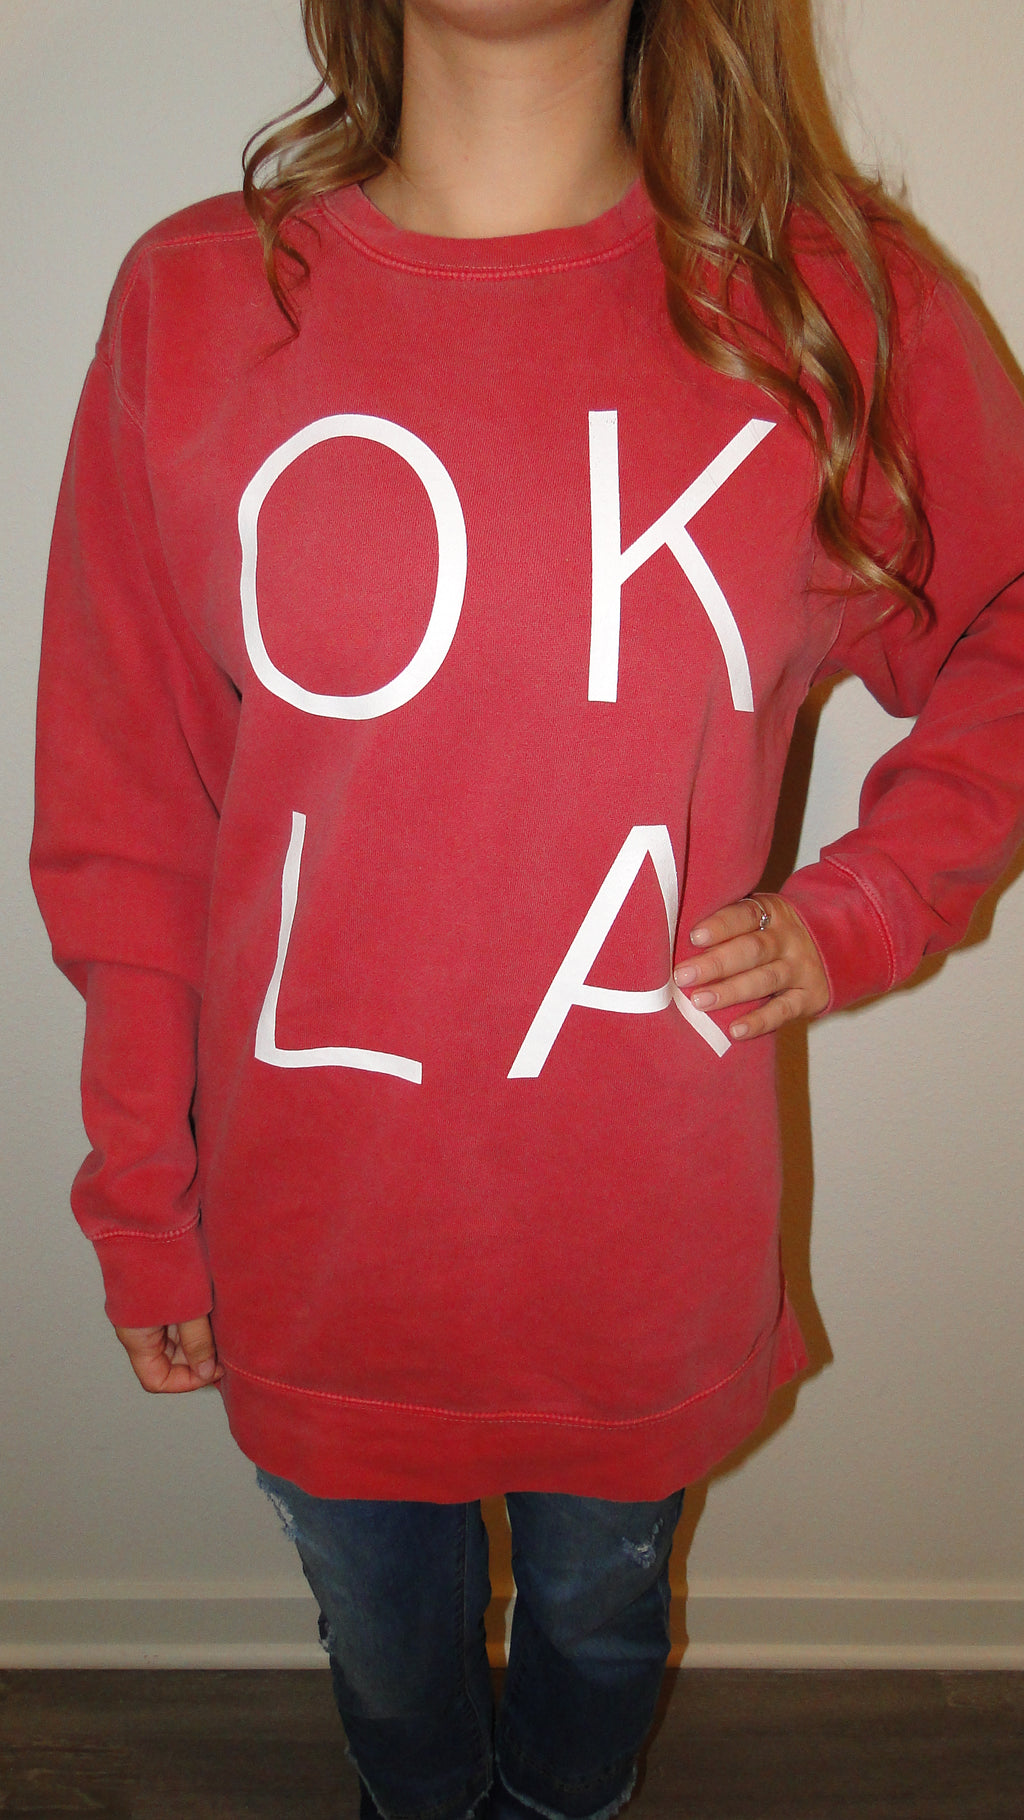 """OKLA"" Gameday Sweatshirt"